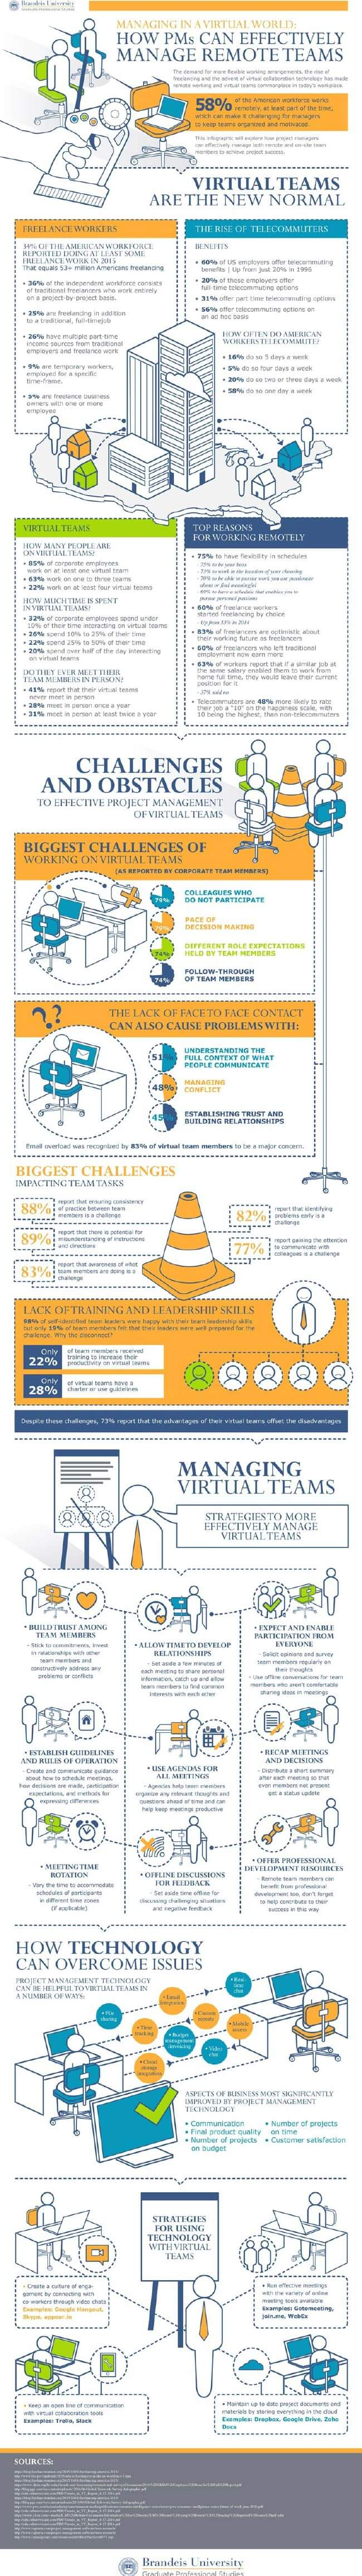 Image titled managing in a virtual world how pms can effectively manage remote teams